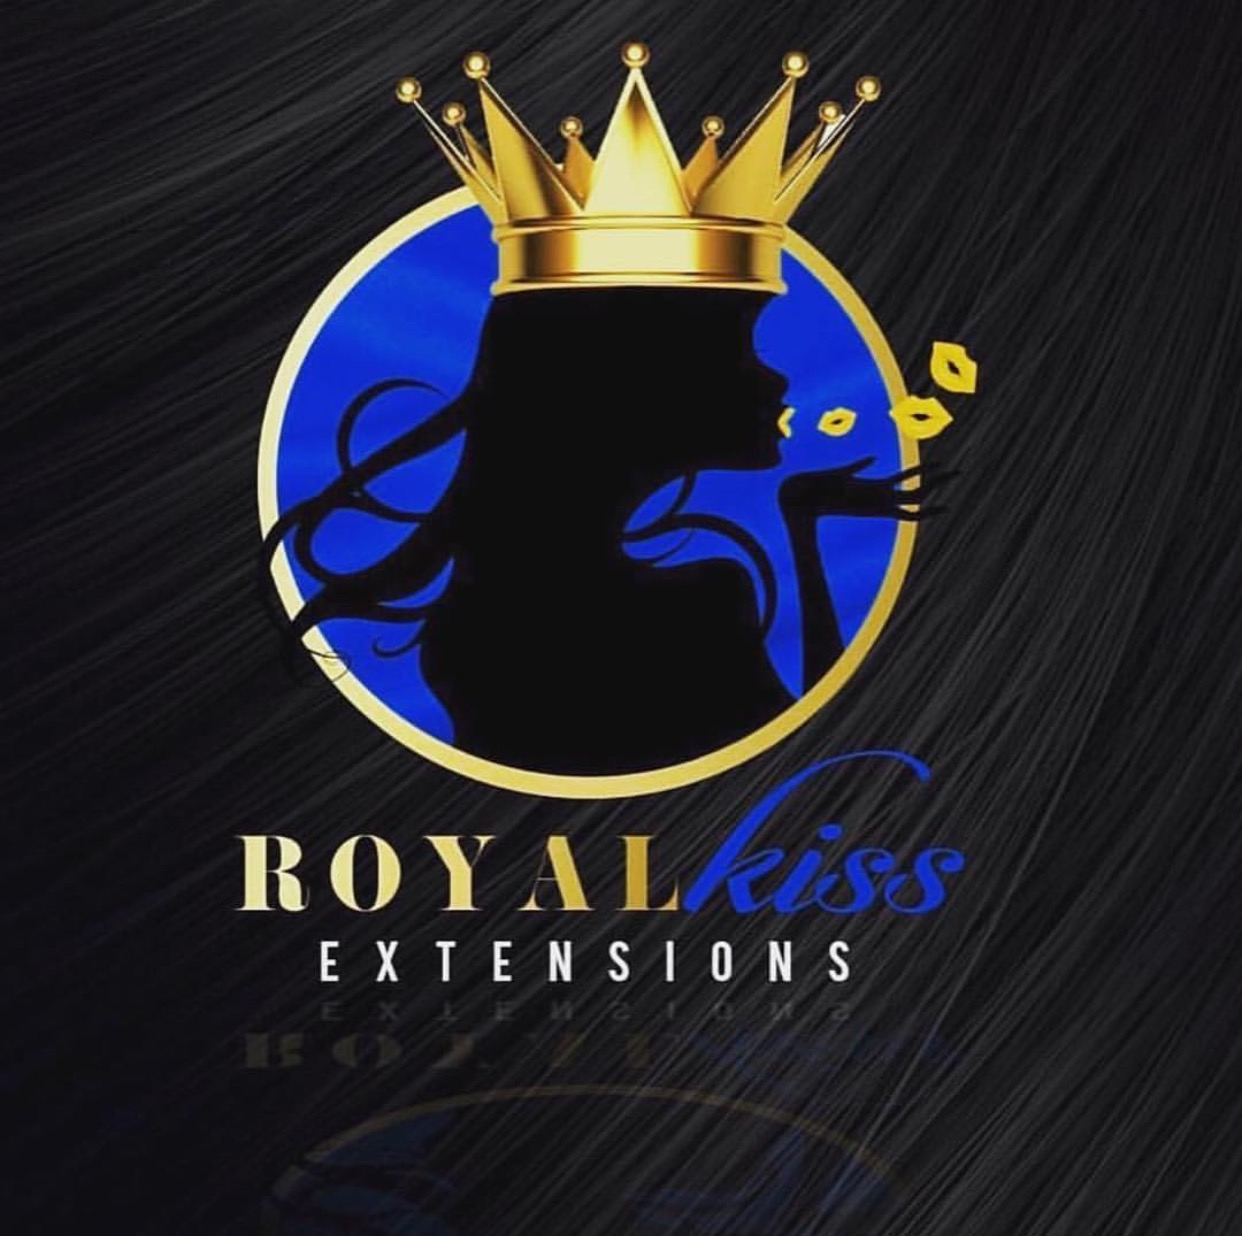 ROYAL LOGO DESIGNS